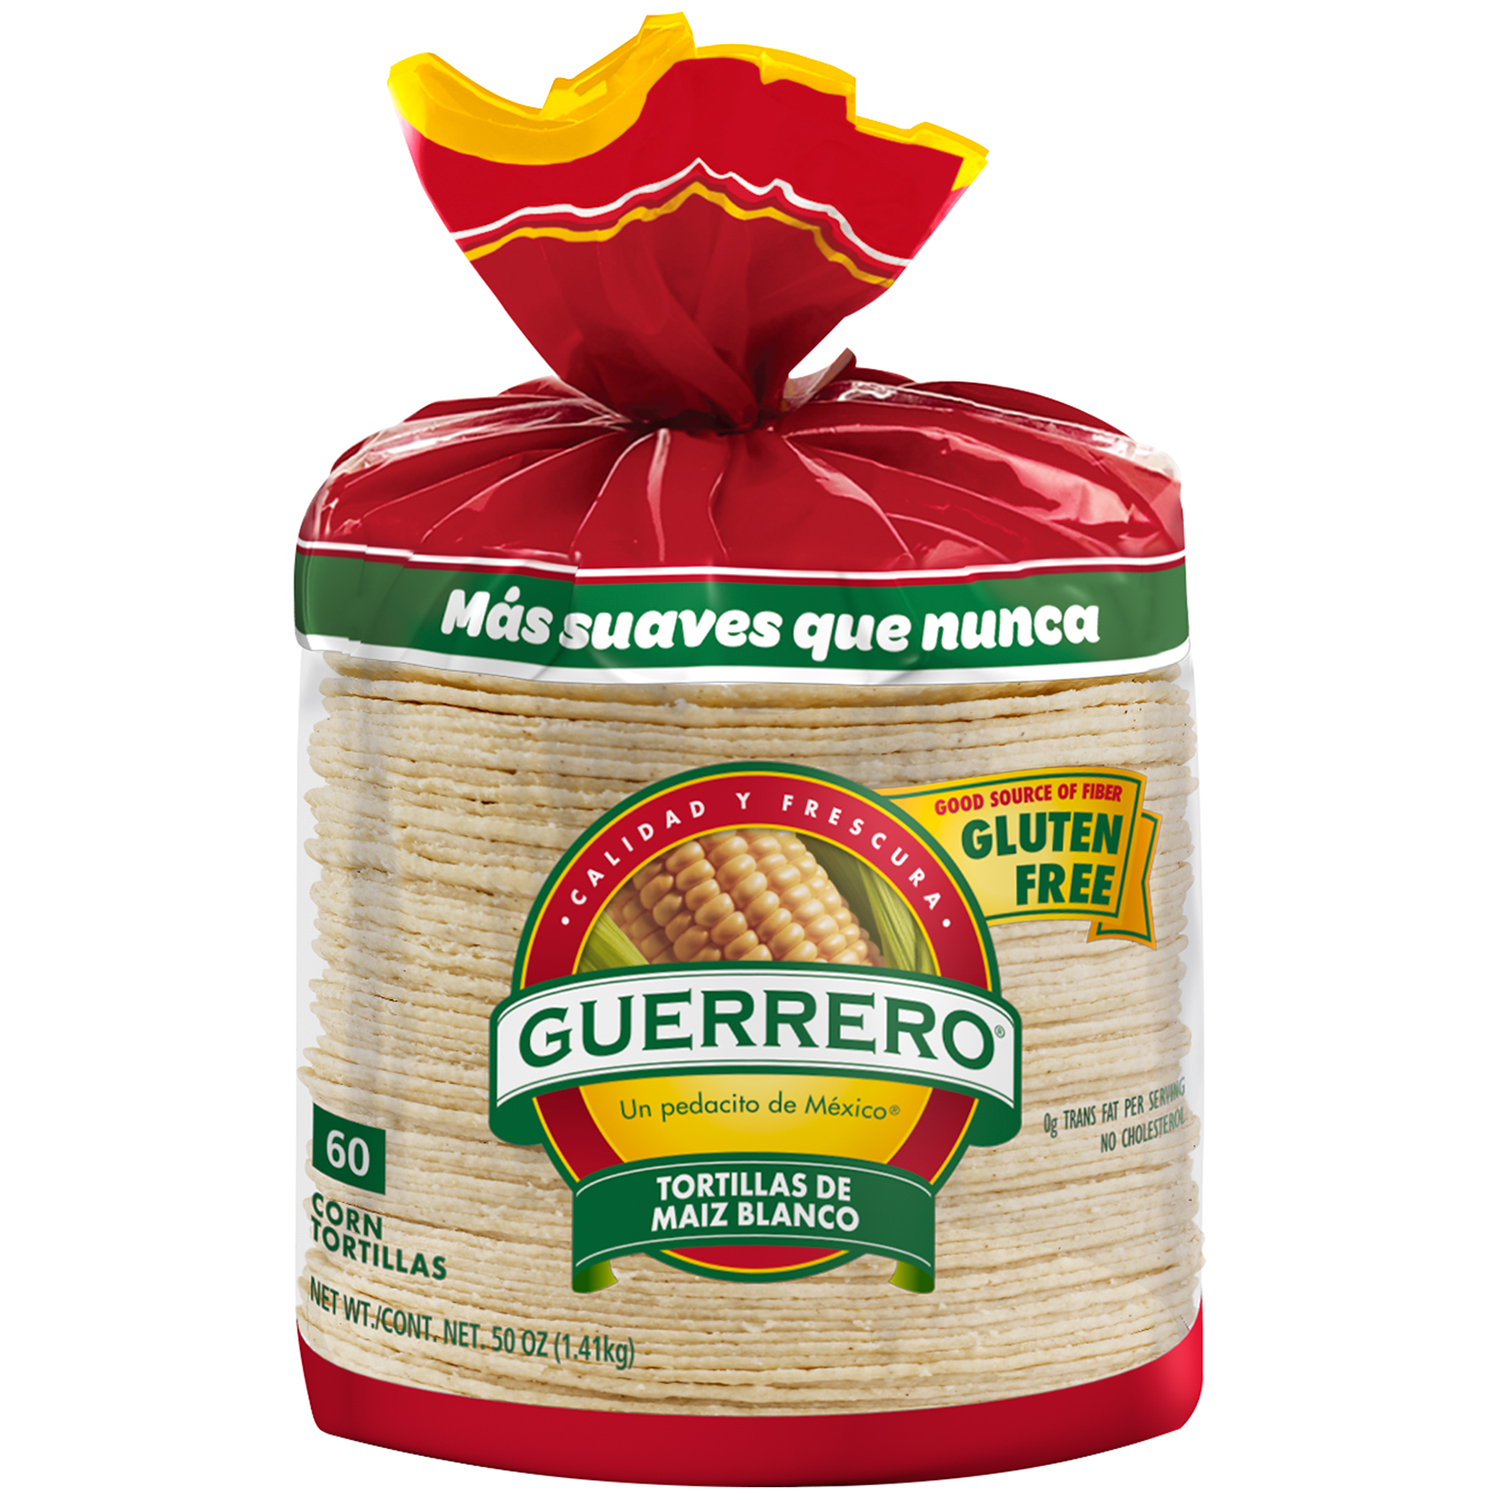 Guerrero® White Corn Tortillas 60 ct Bag